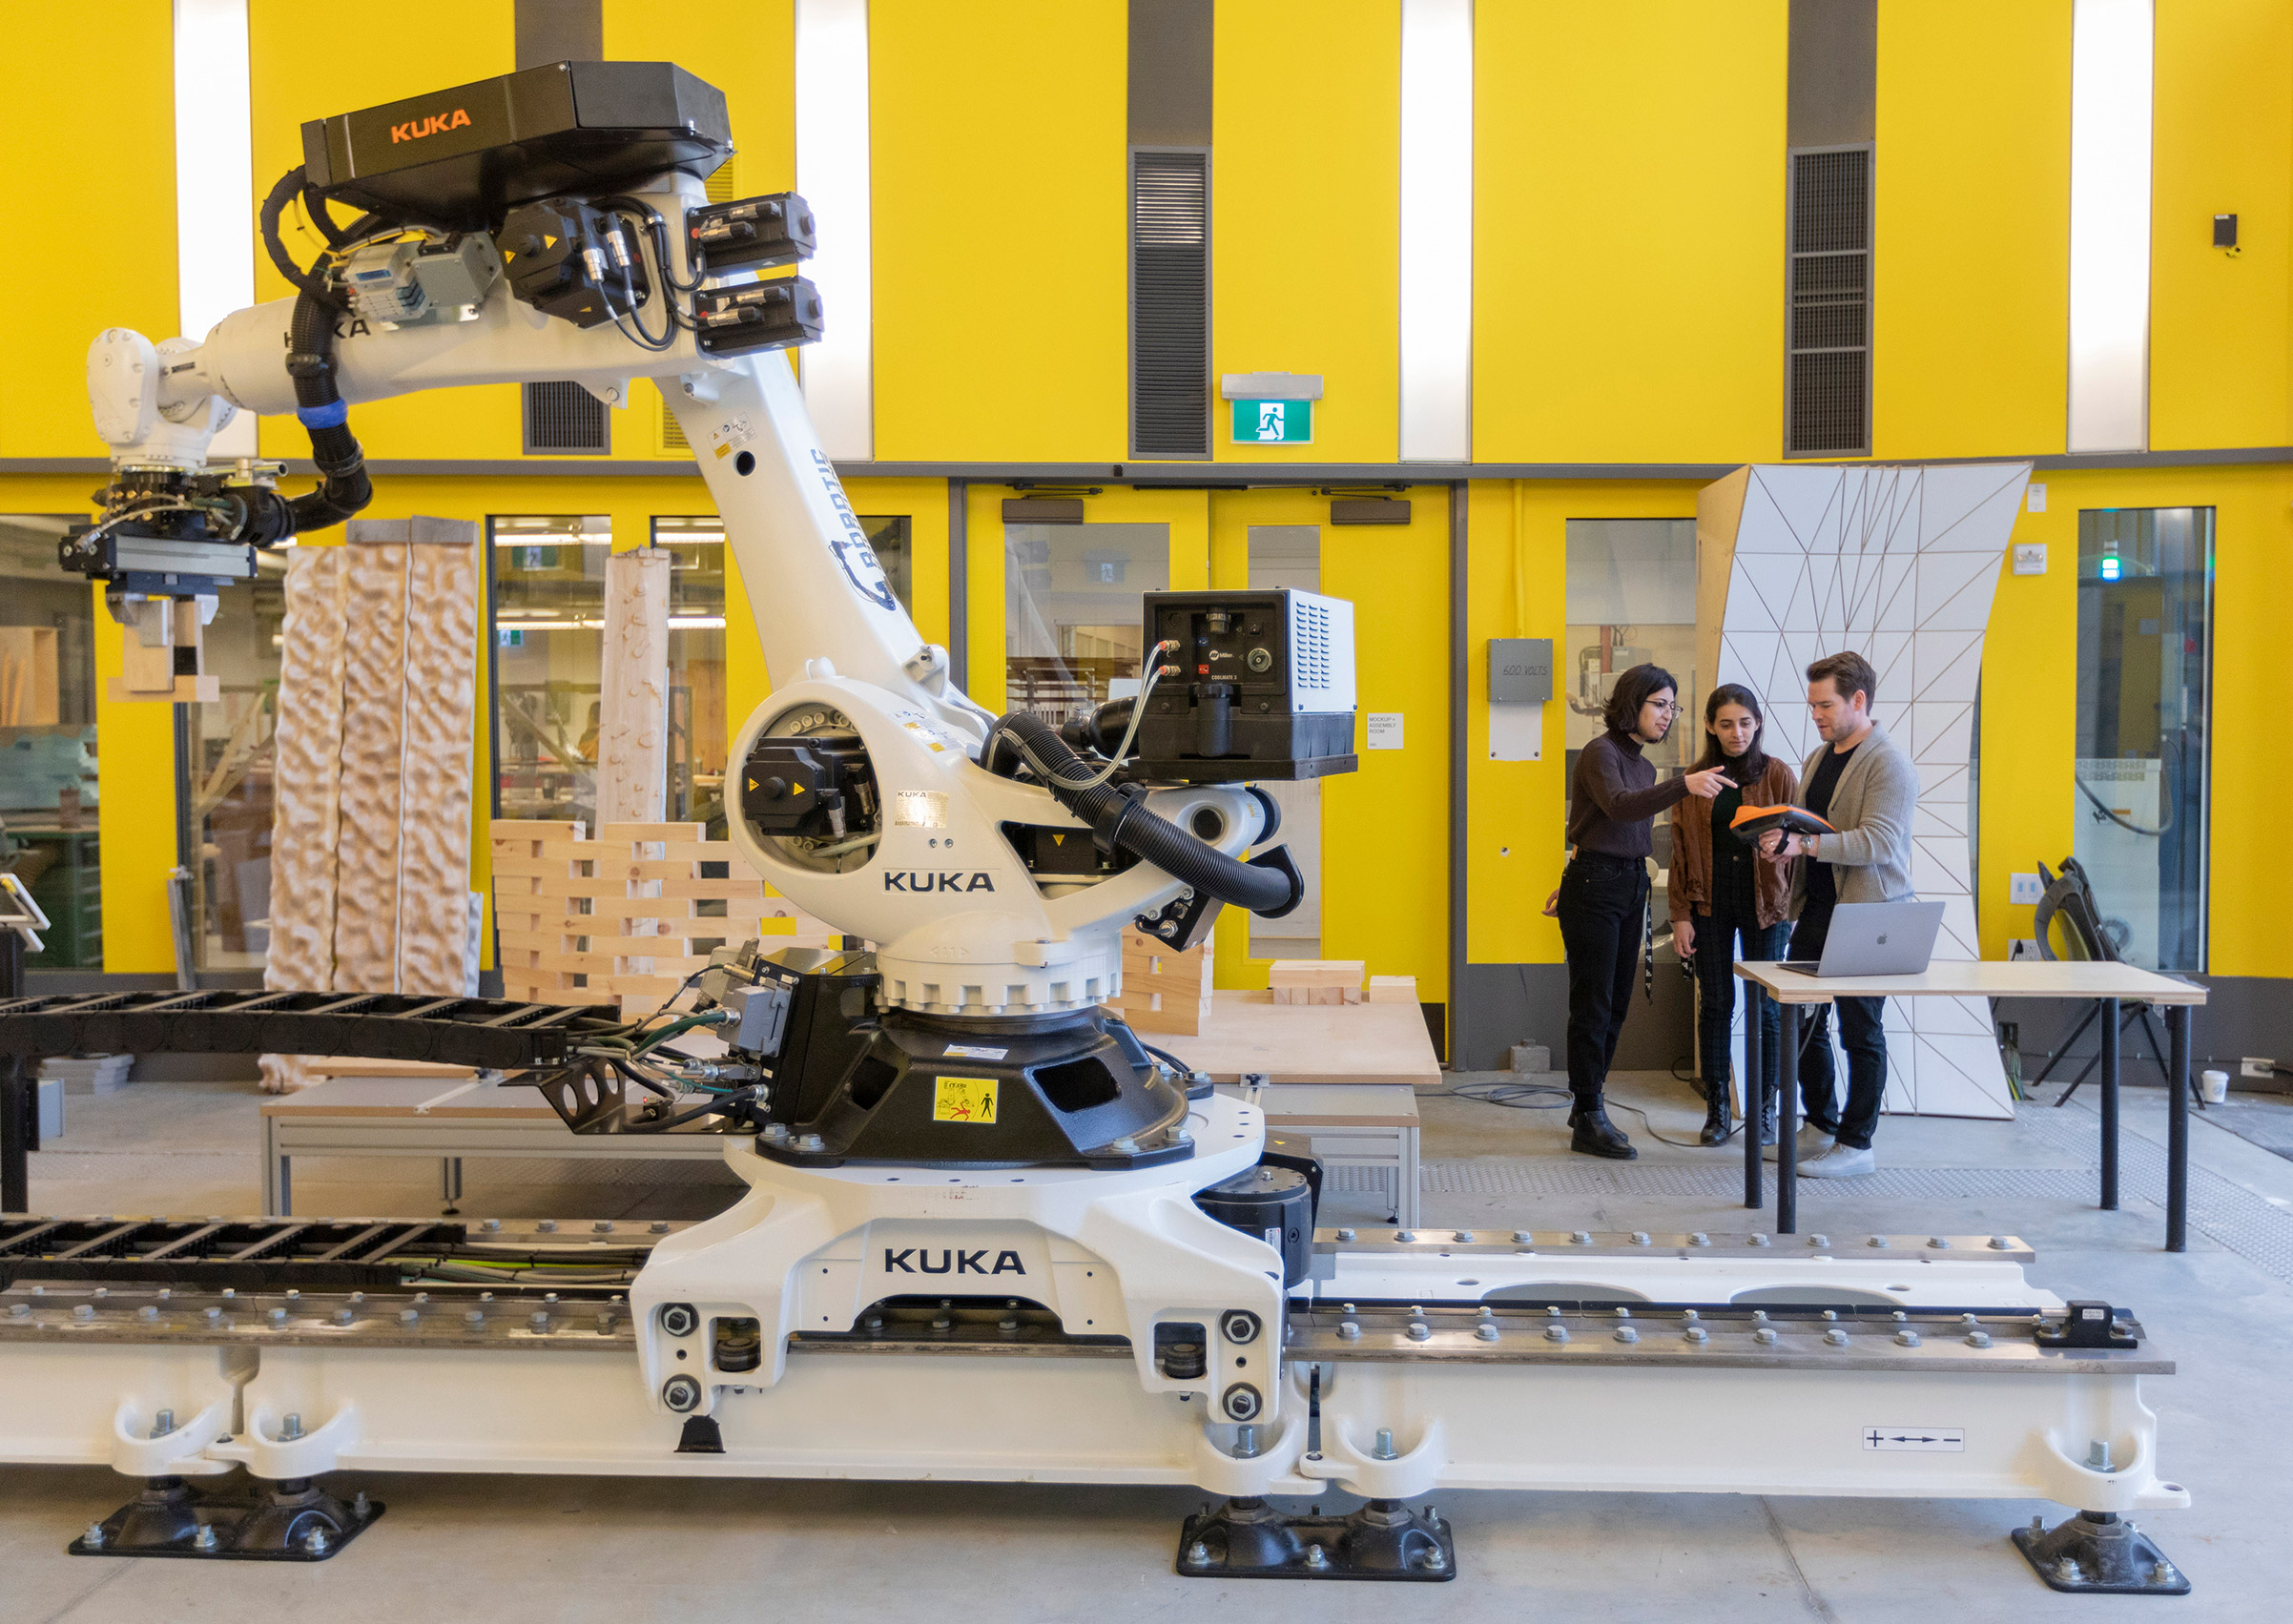 White robotic arm in the foreground against a yellow wall. Three students engaged in conversation in the background